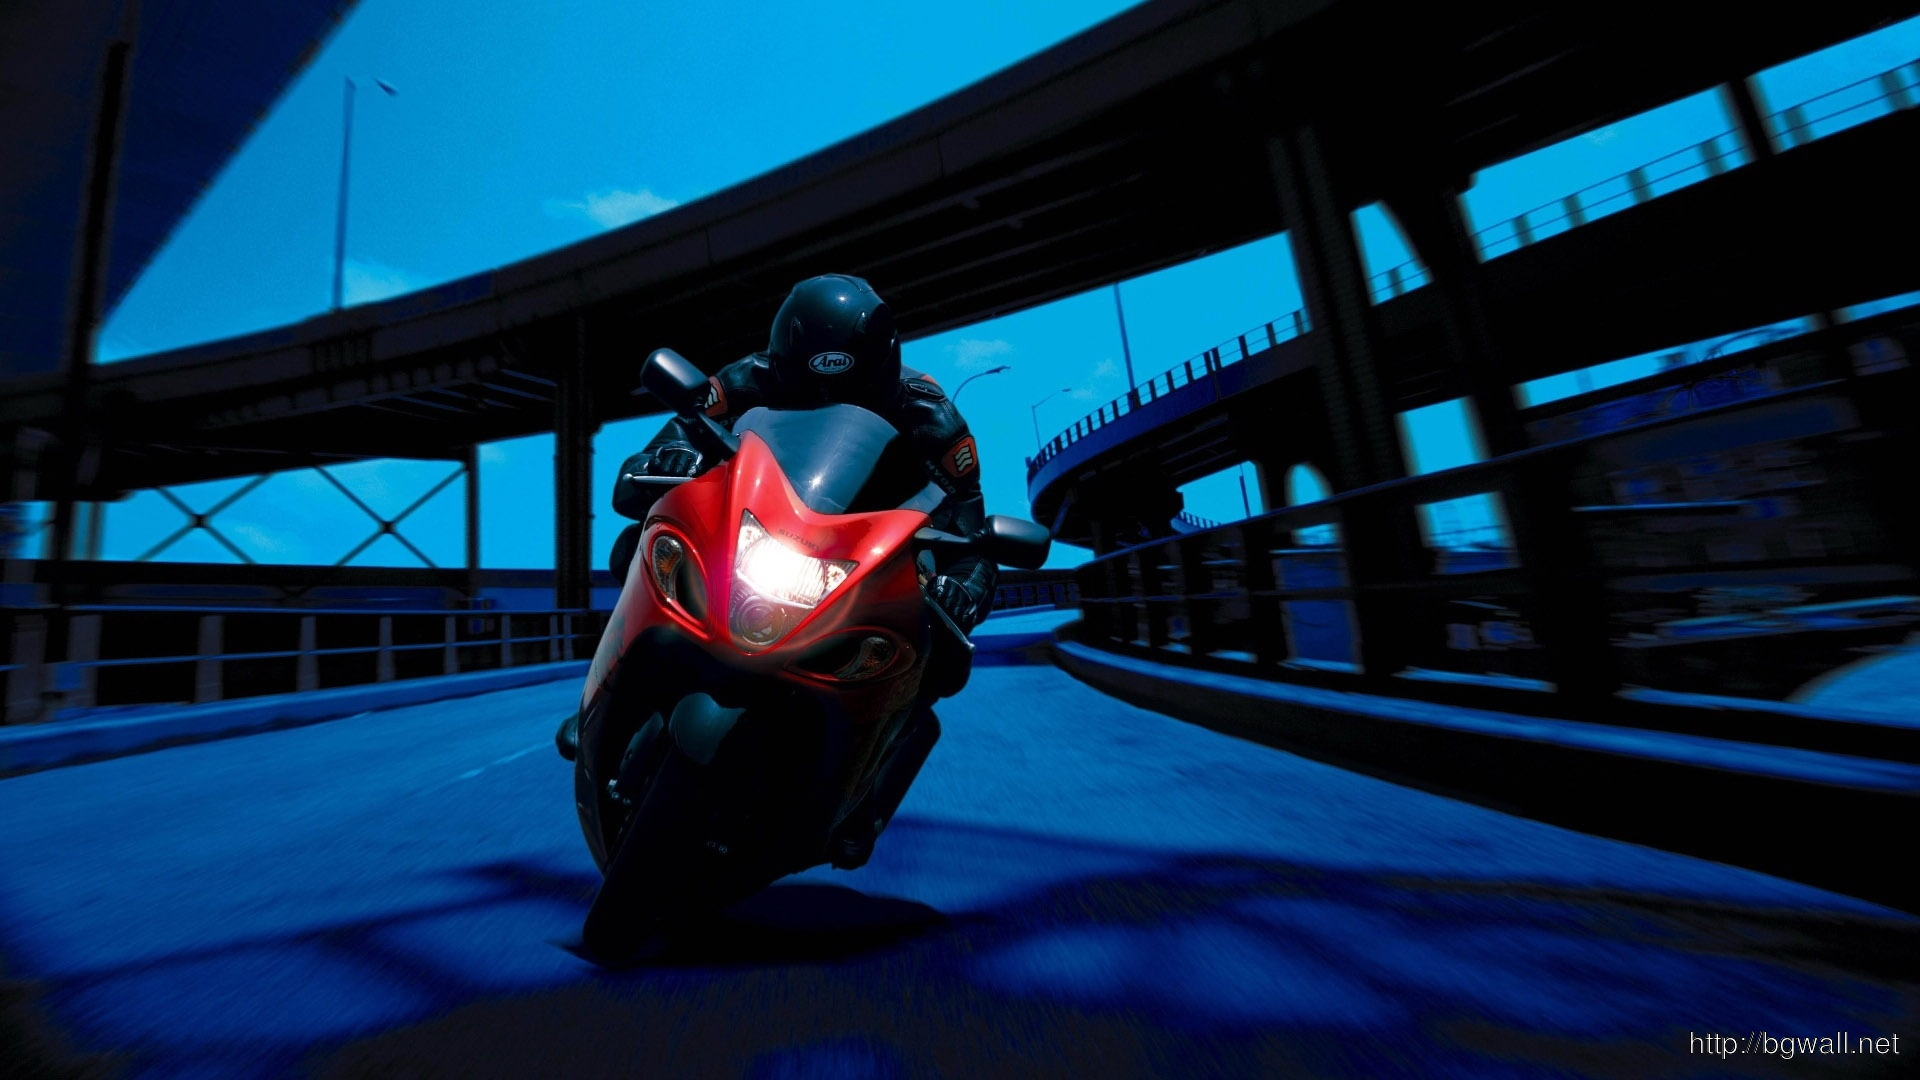 Car And Bike Wallpaper Download View Of Night Bike Ride Wallpaper Wallpapers Background